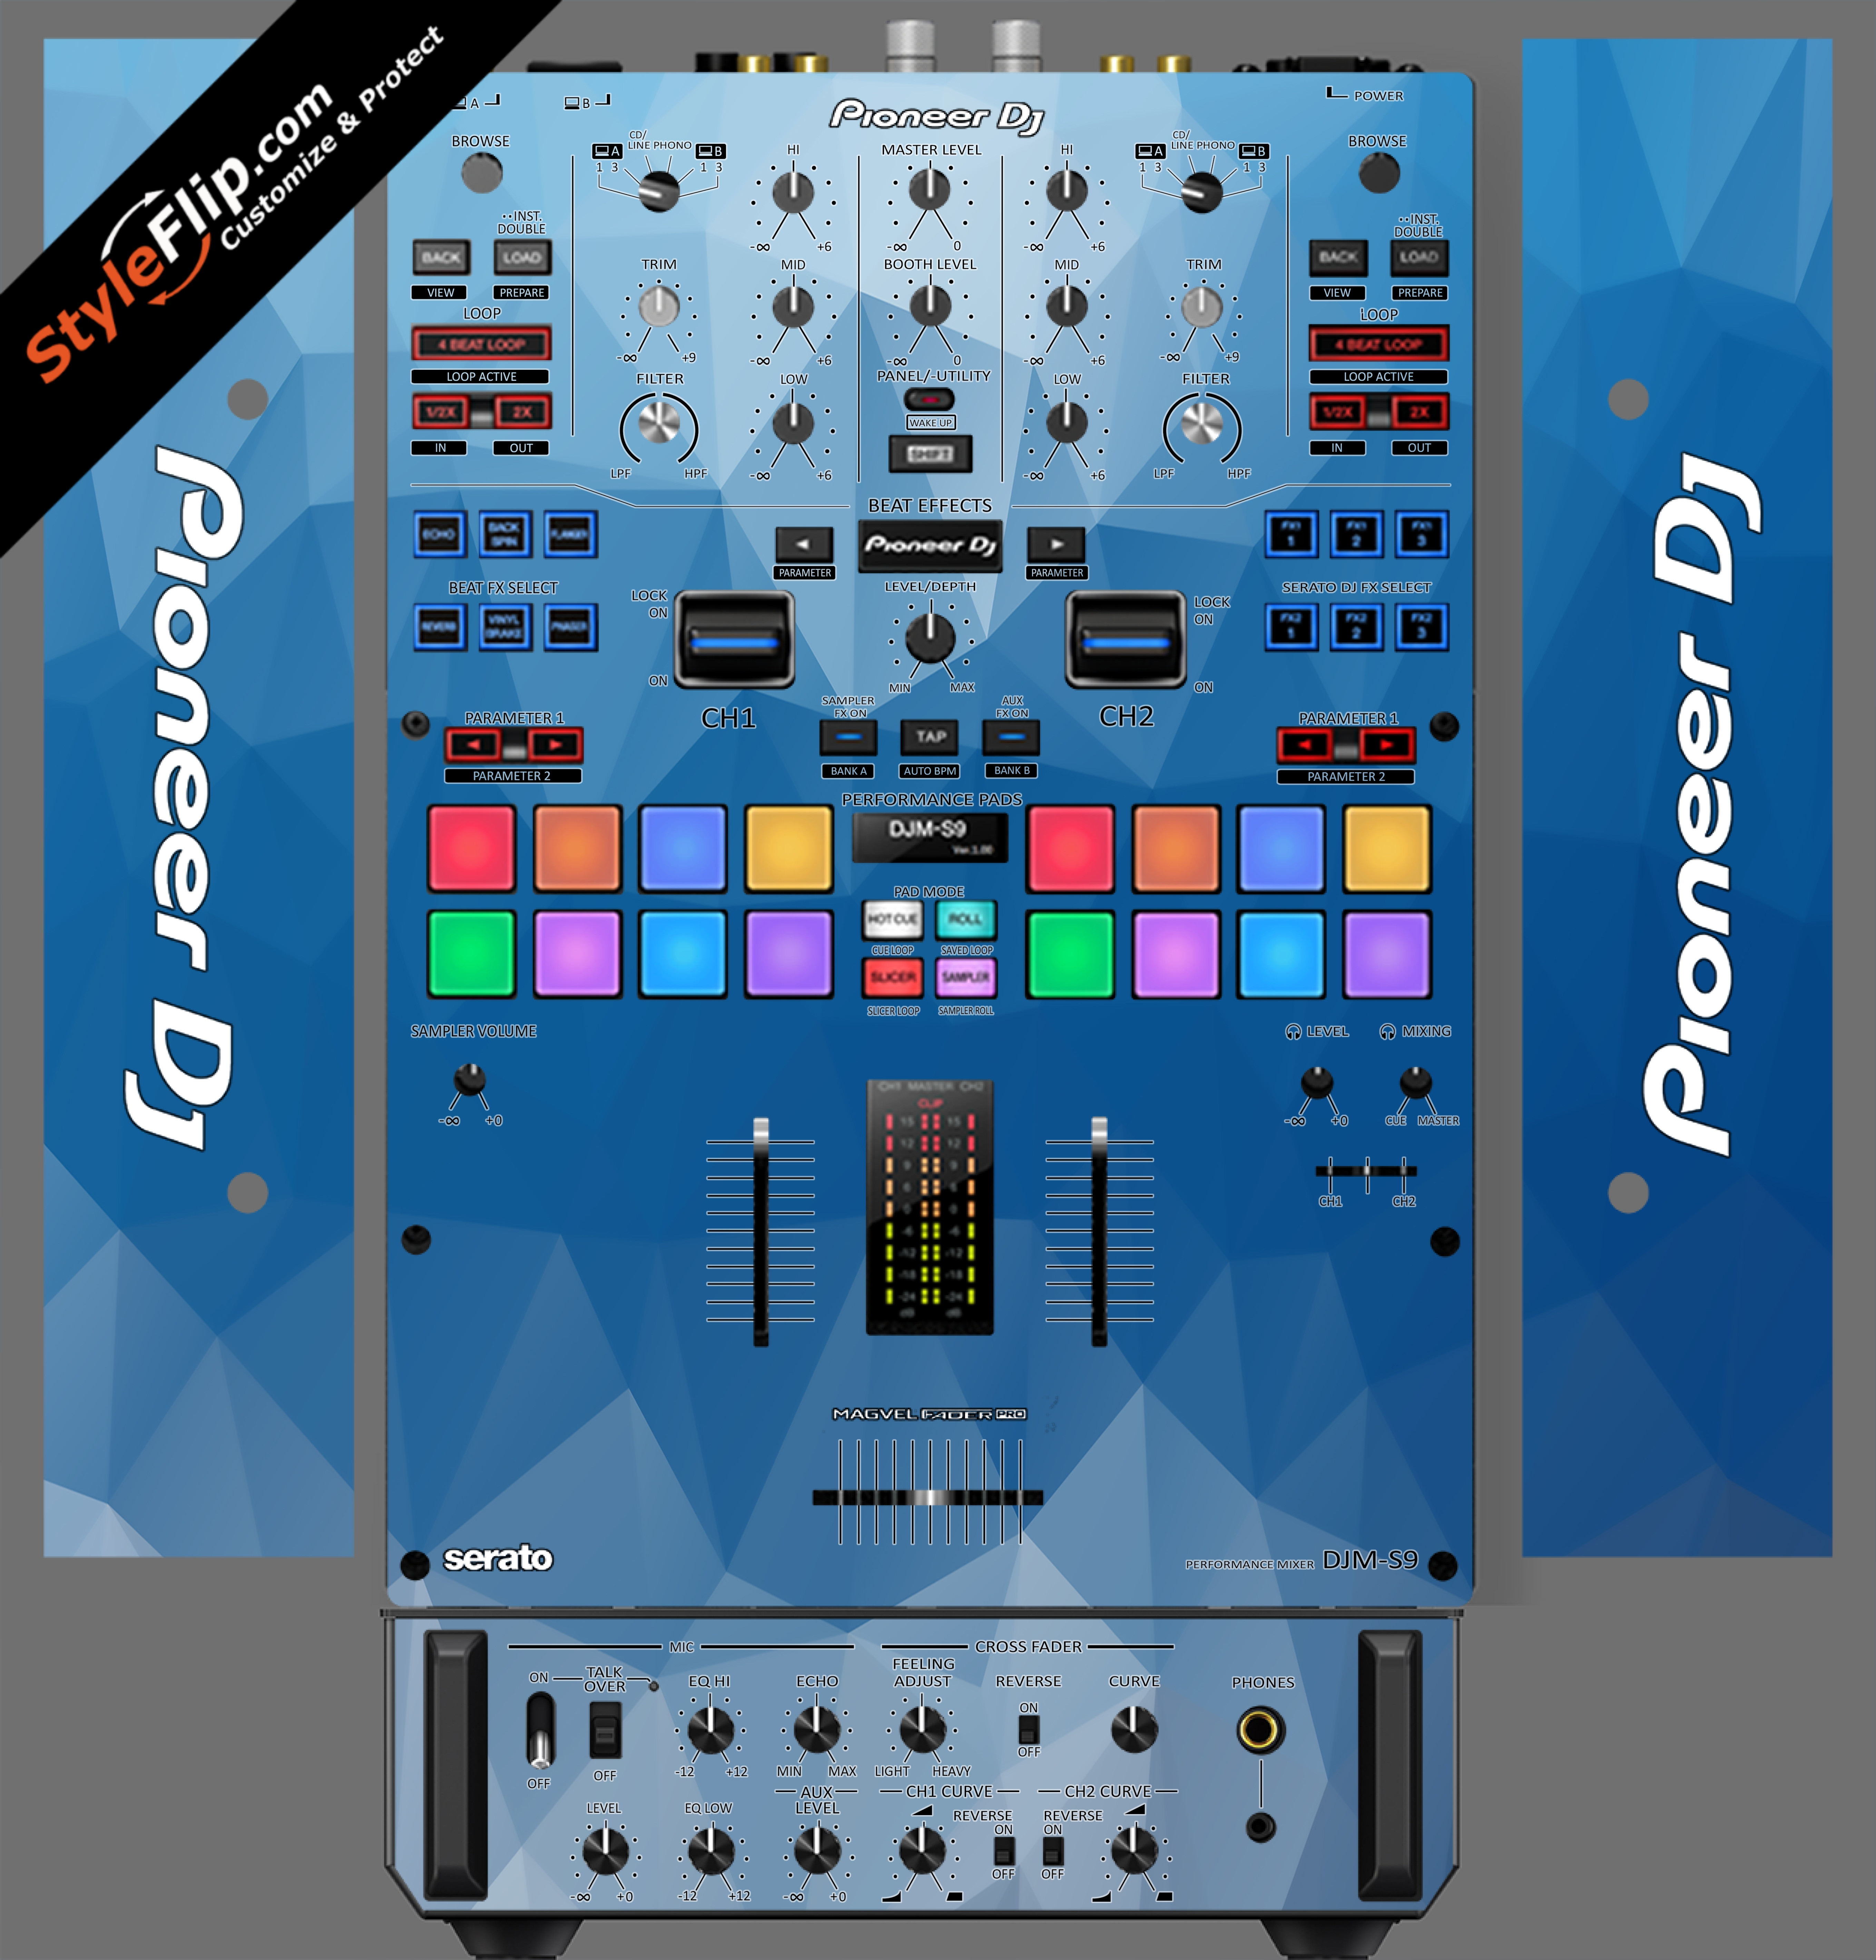 Tranquility  Pioneer DJM S9